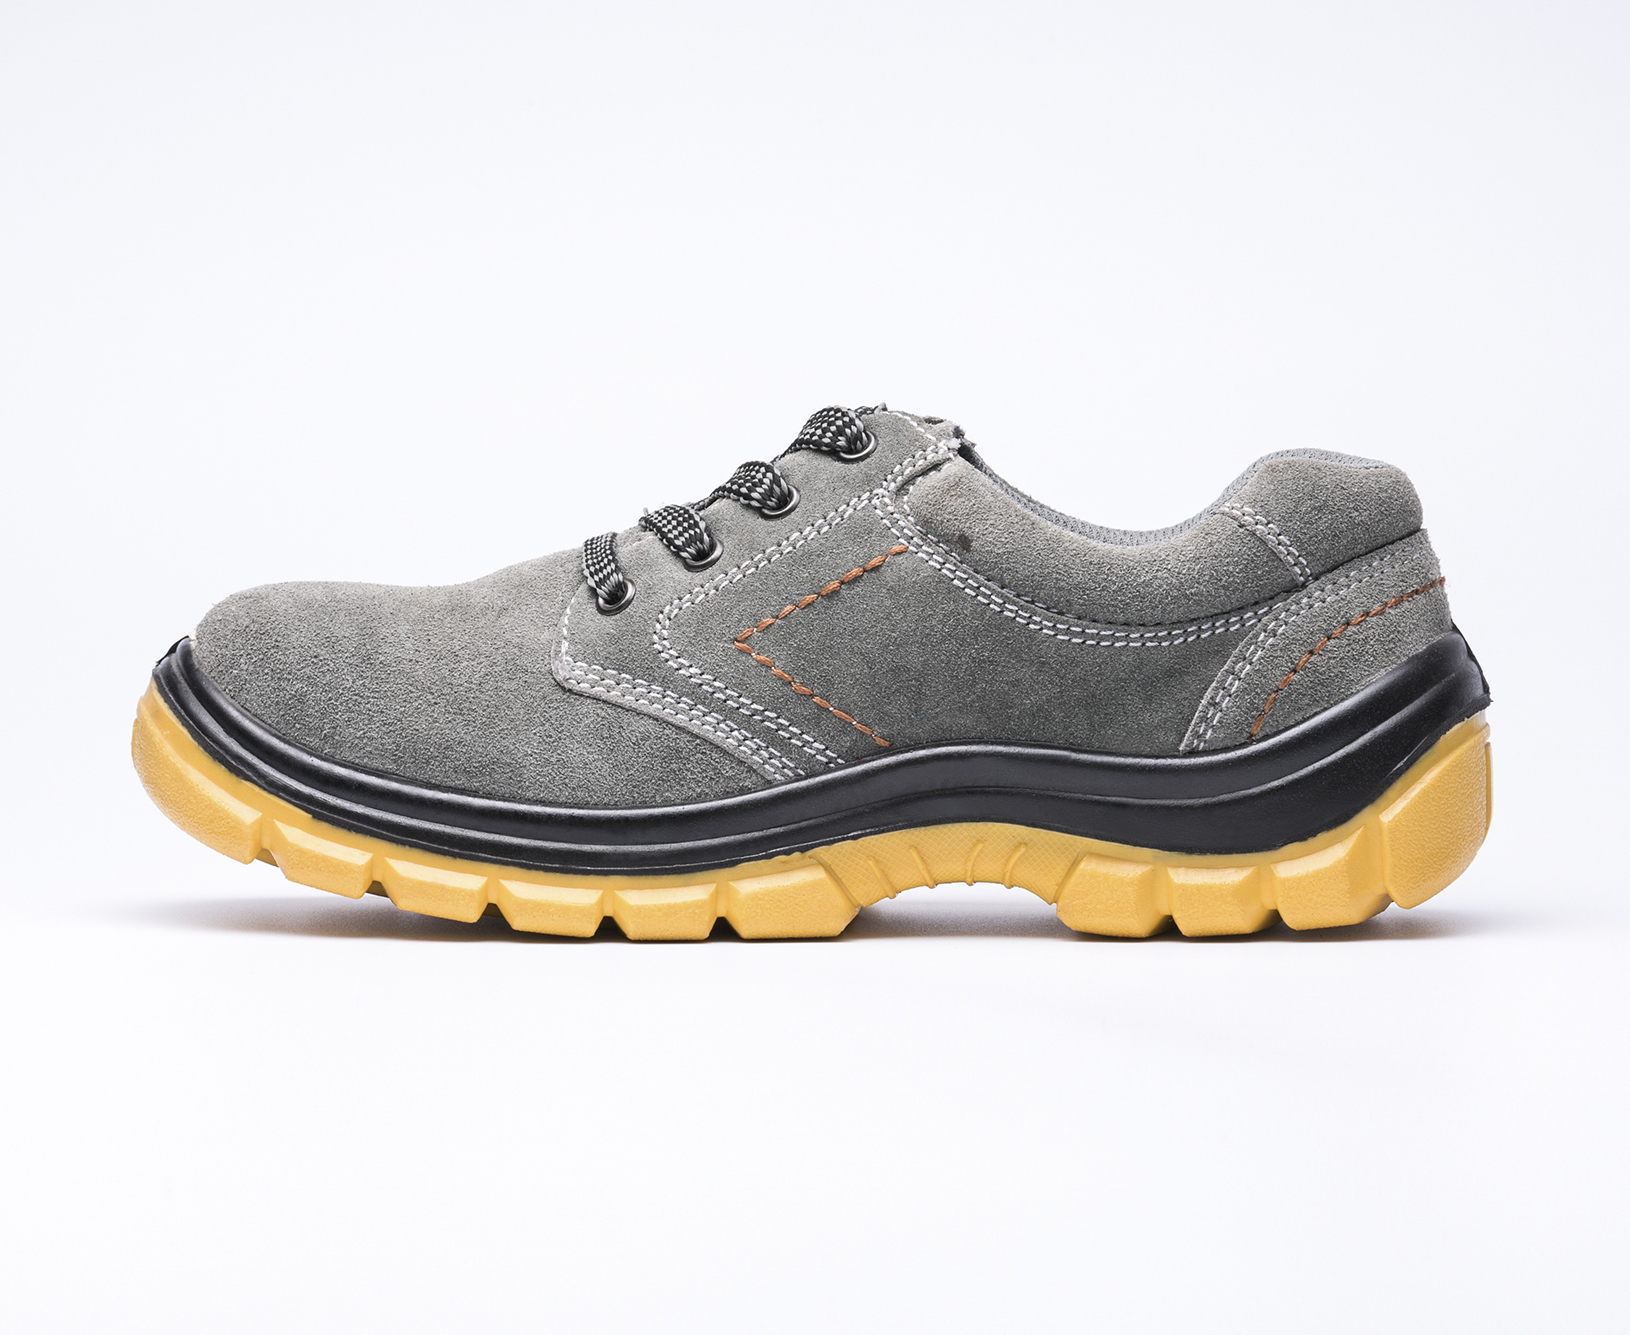 safety work shoes 9157 suede leather pu outsole